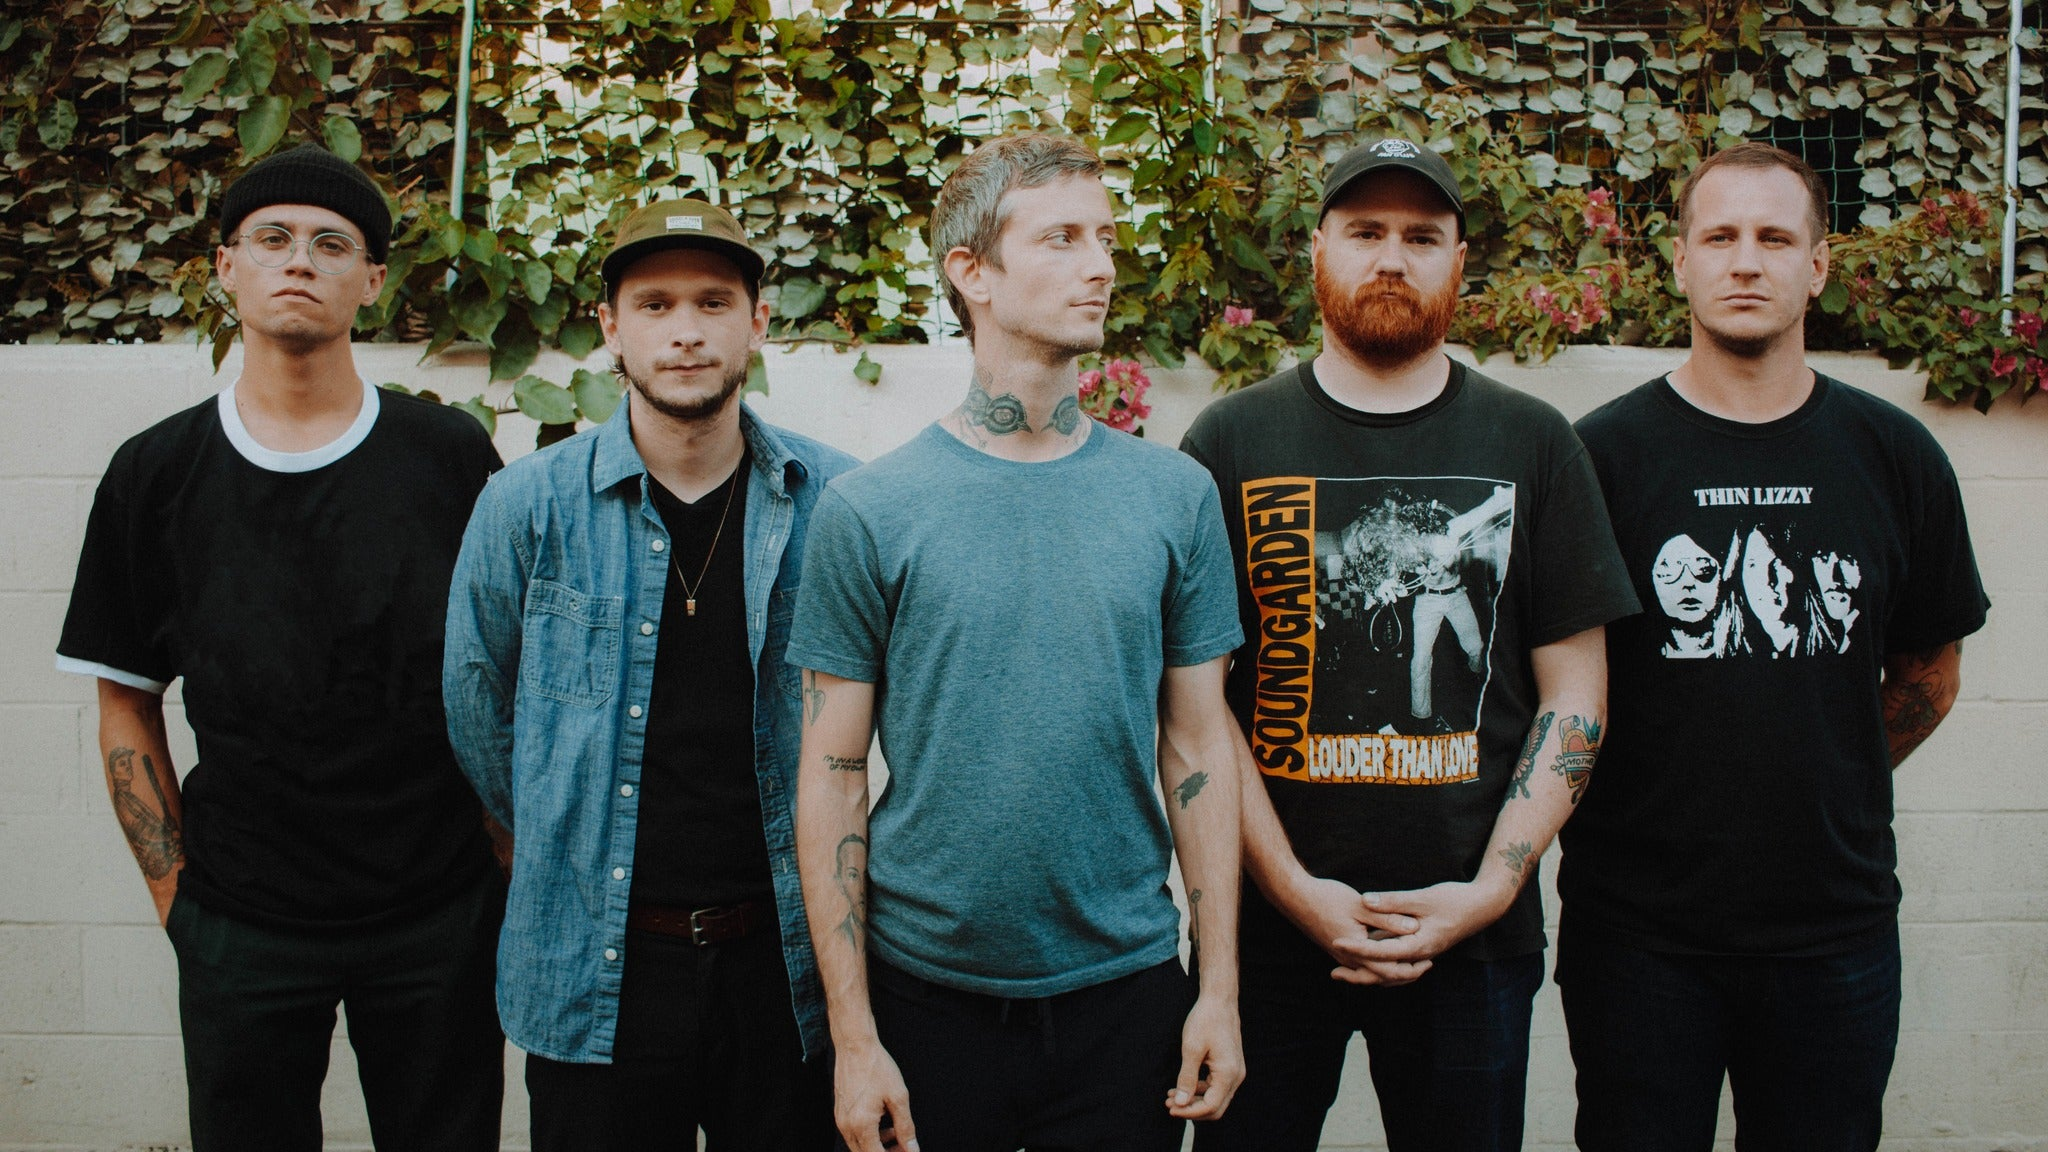 Concert Crave Presents: Citizen at House of Independents